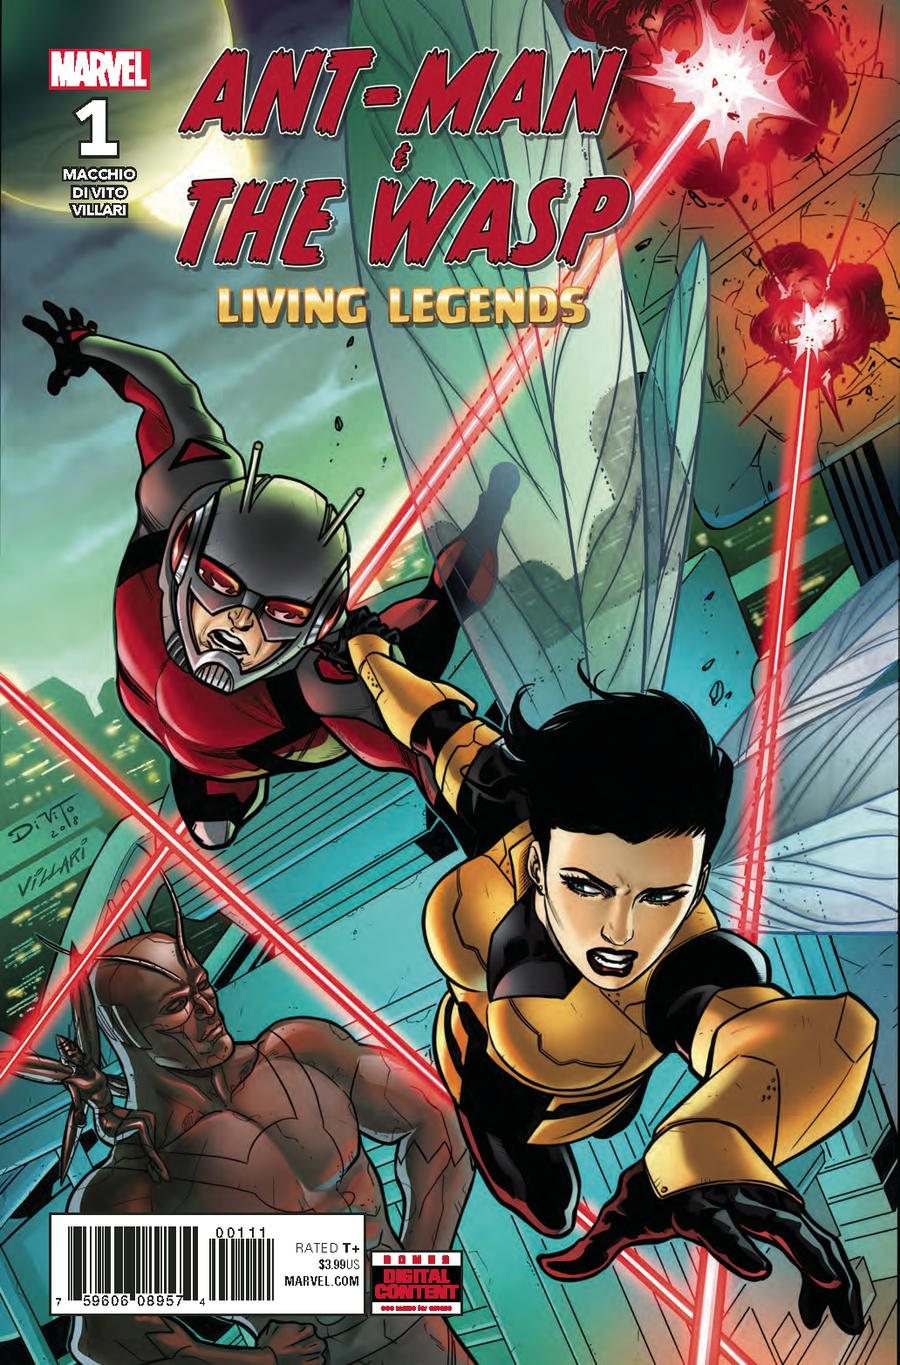 Ant-Man And The Wasp Living Legends #1 Cover A Regular Andrea Di Vito Cover